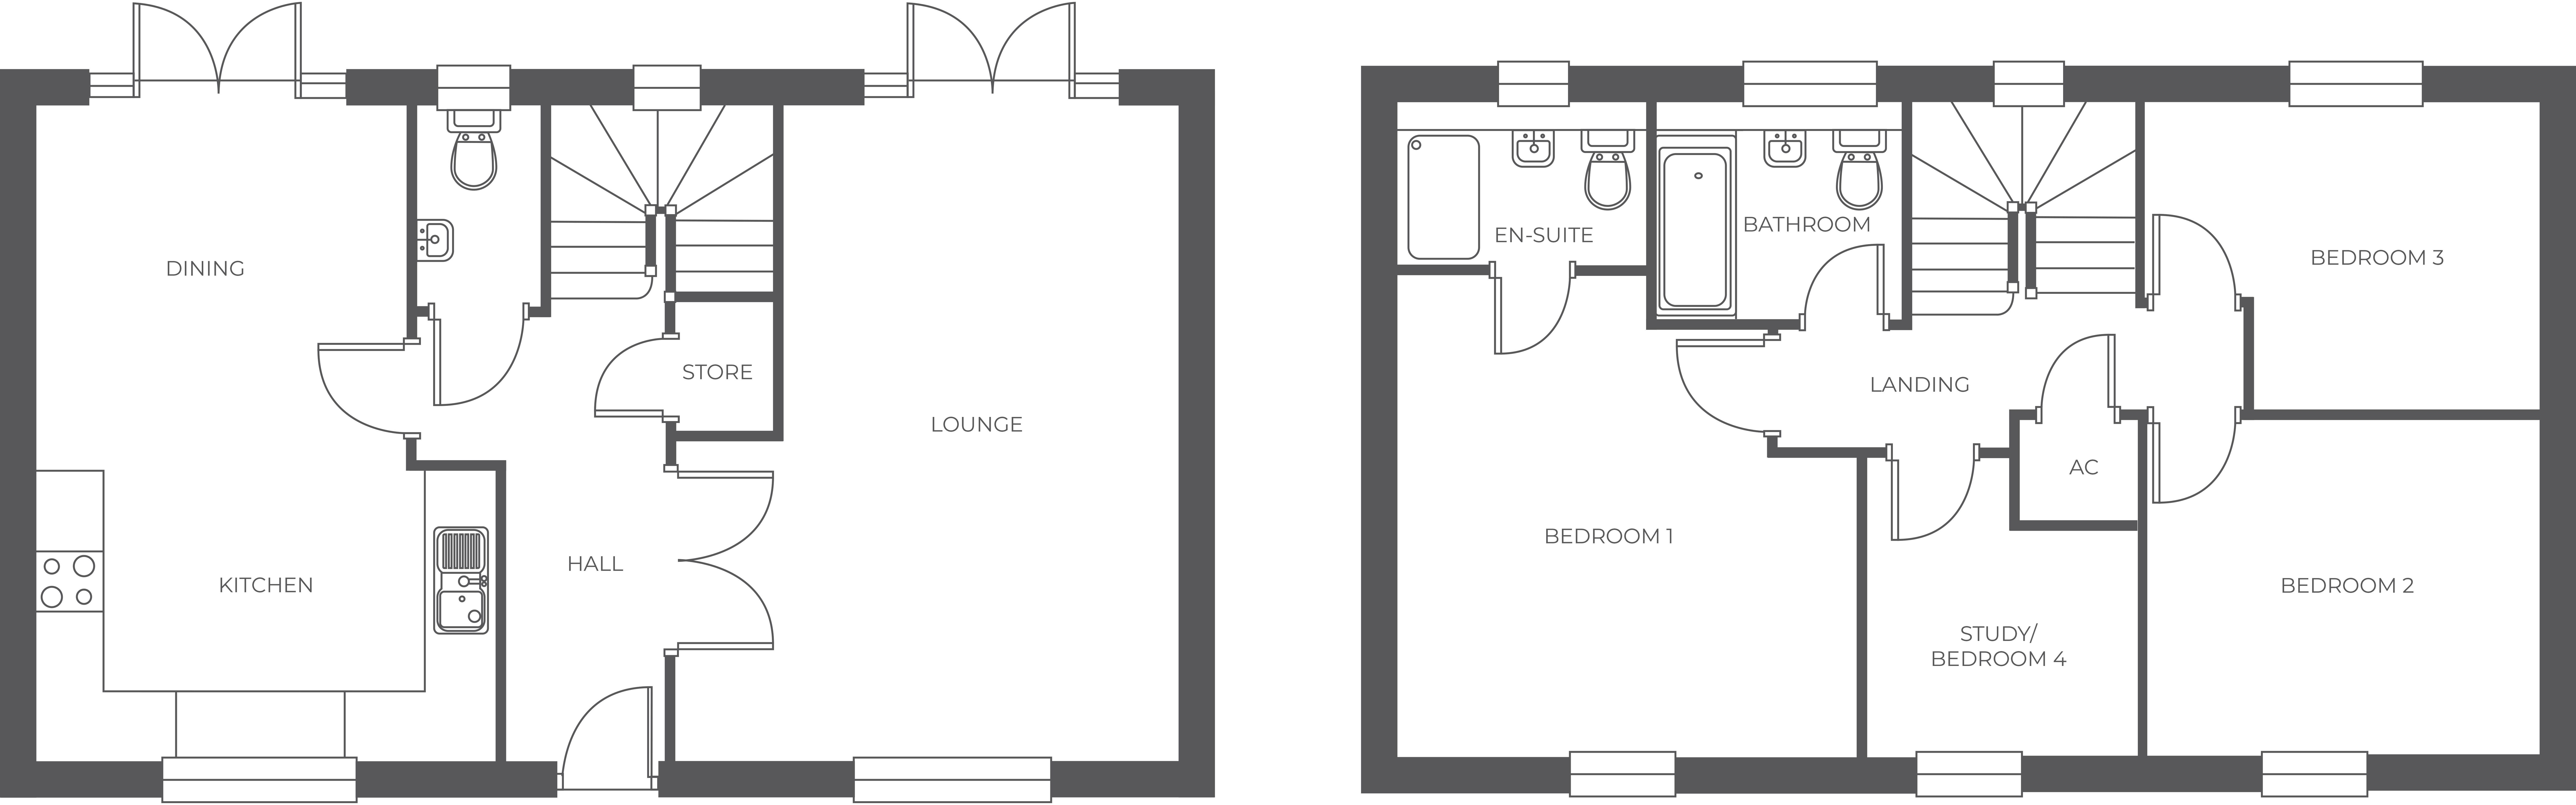 Ferrer's Chase, Plot 8 floor plan